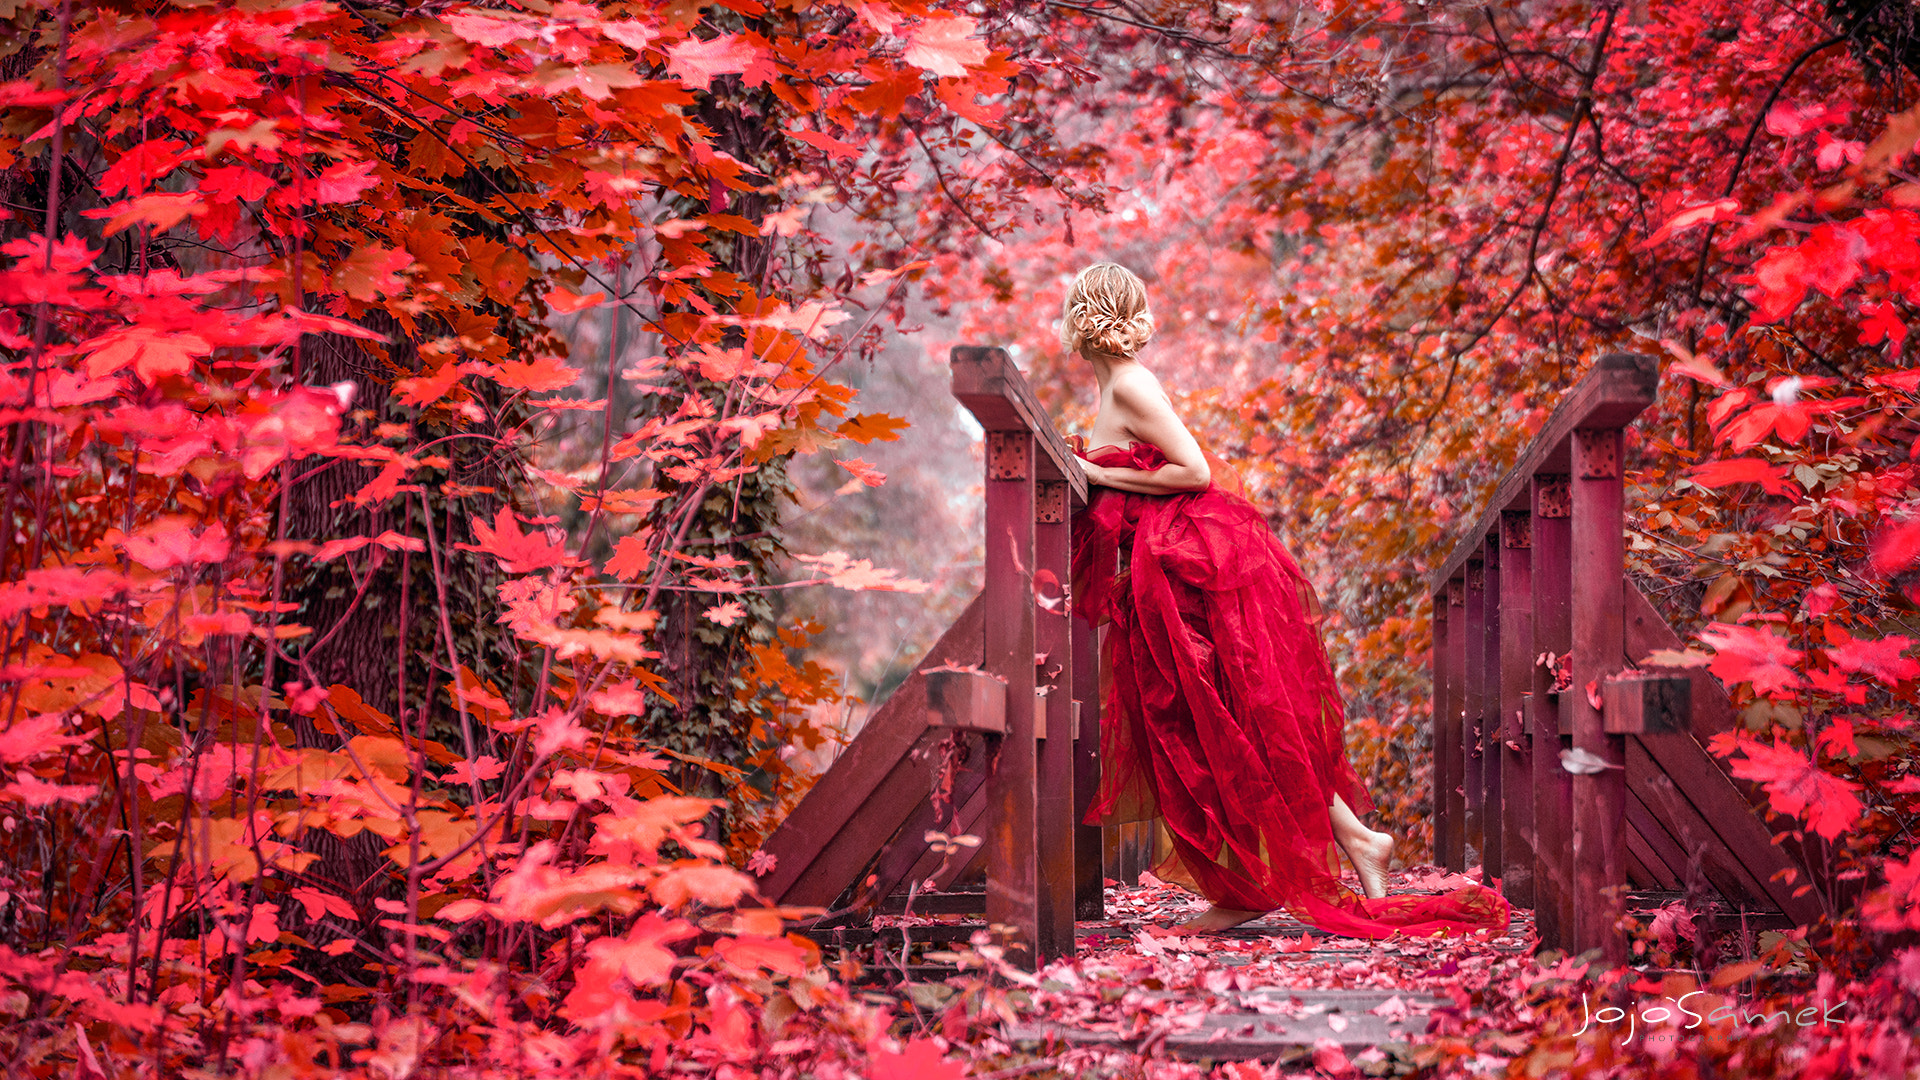 Photograph 50 Shades of Red by Jojo Samek on 500px